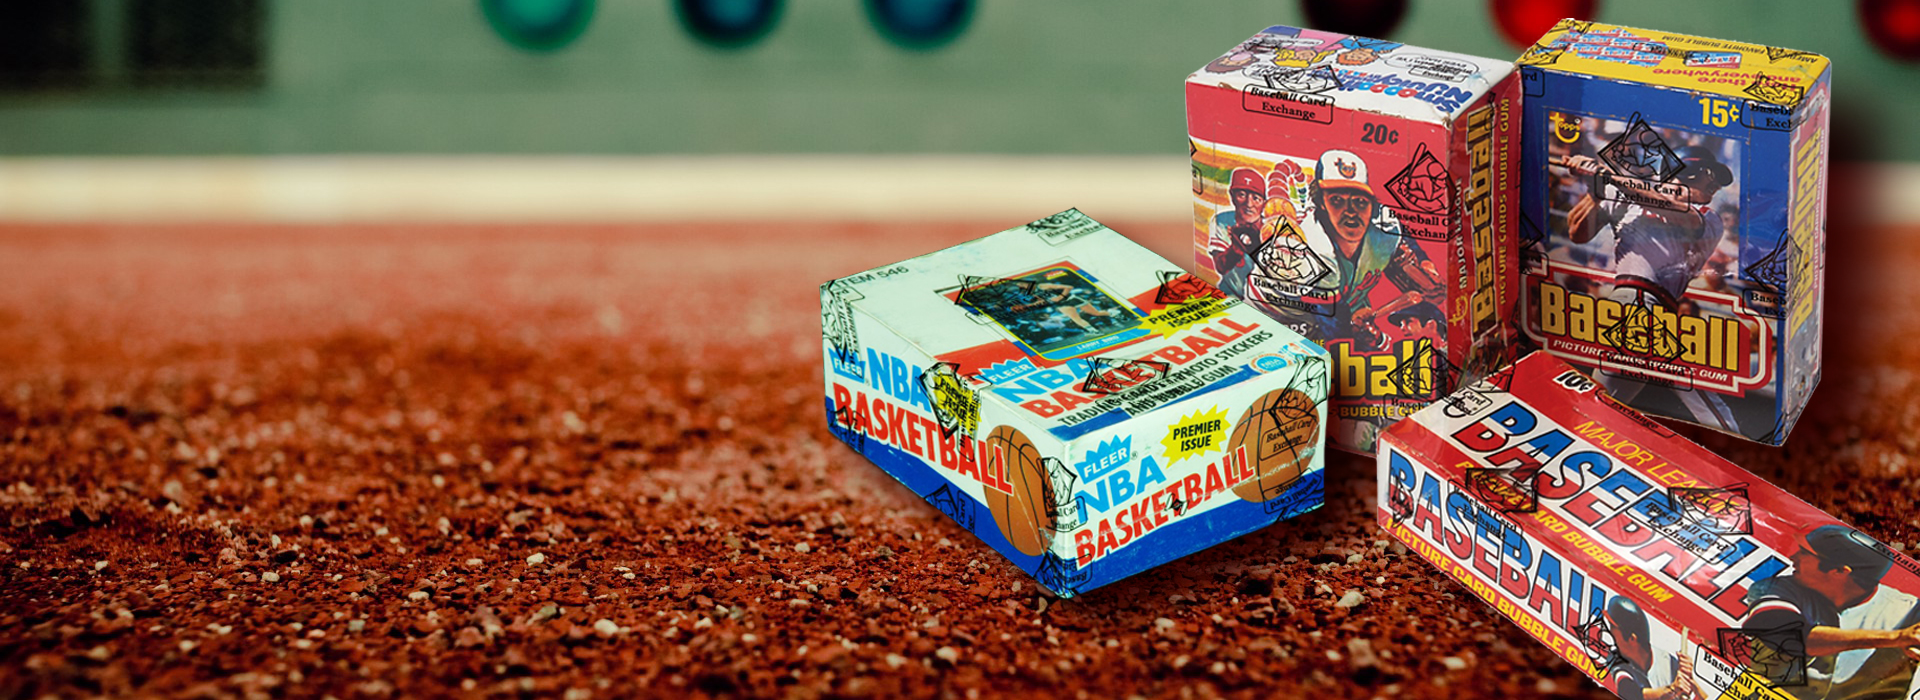 Baseball Card Exchange   The Largest Vintage Unopened Inventory on